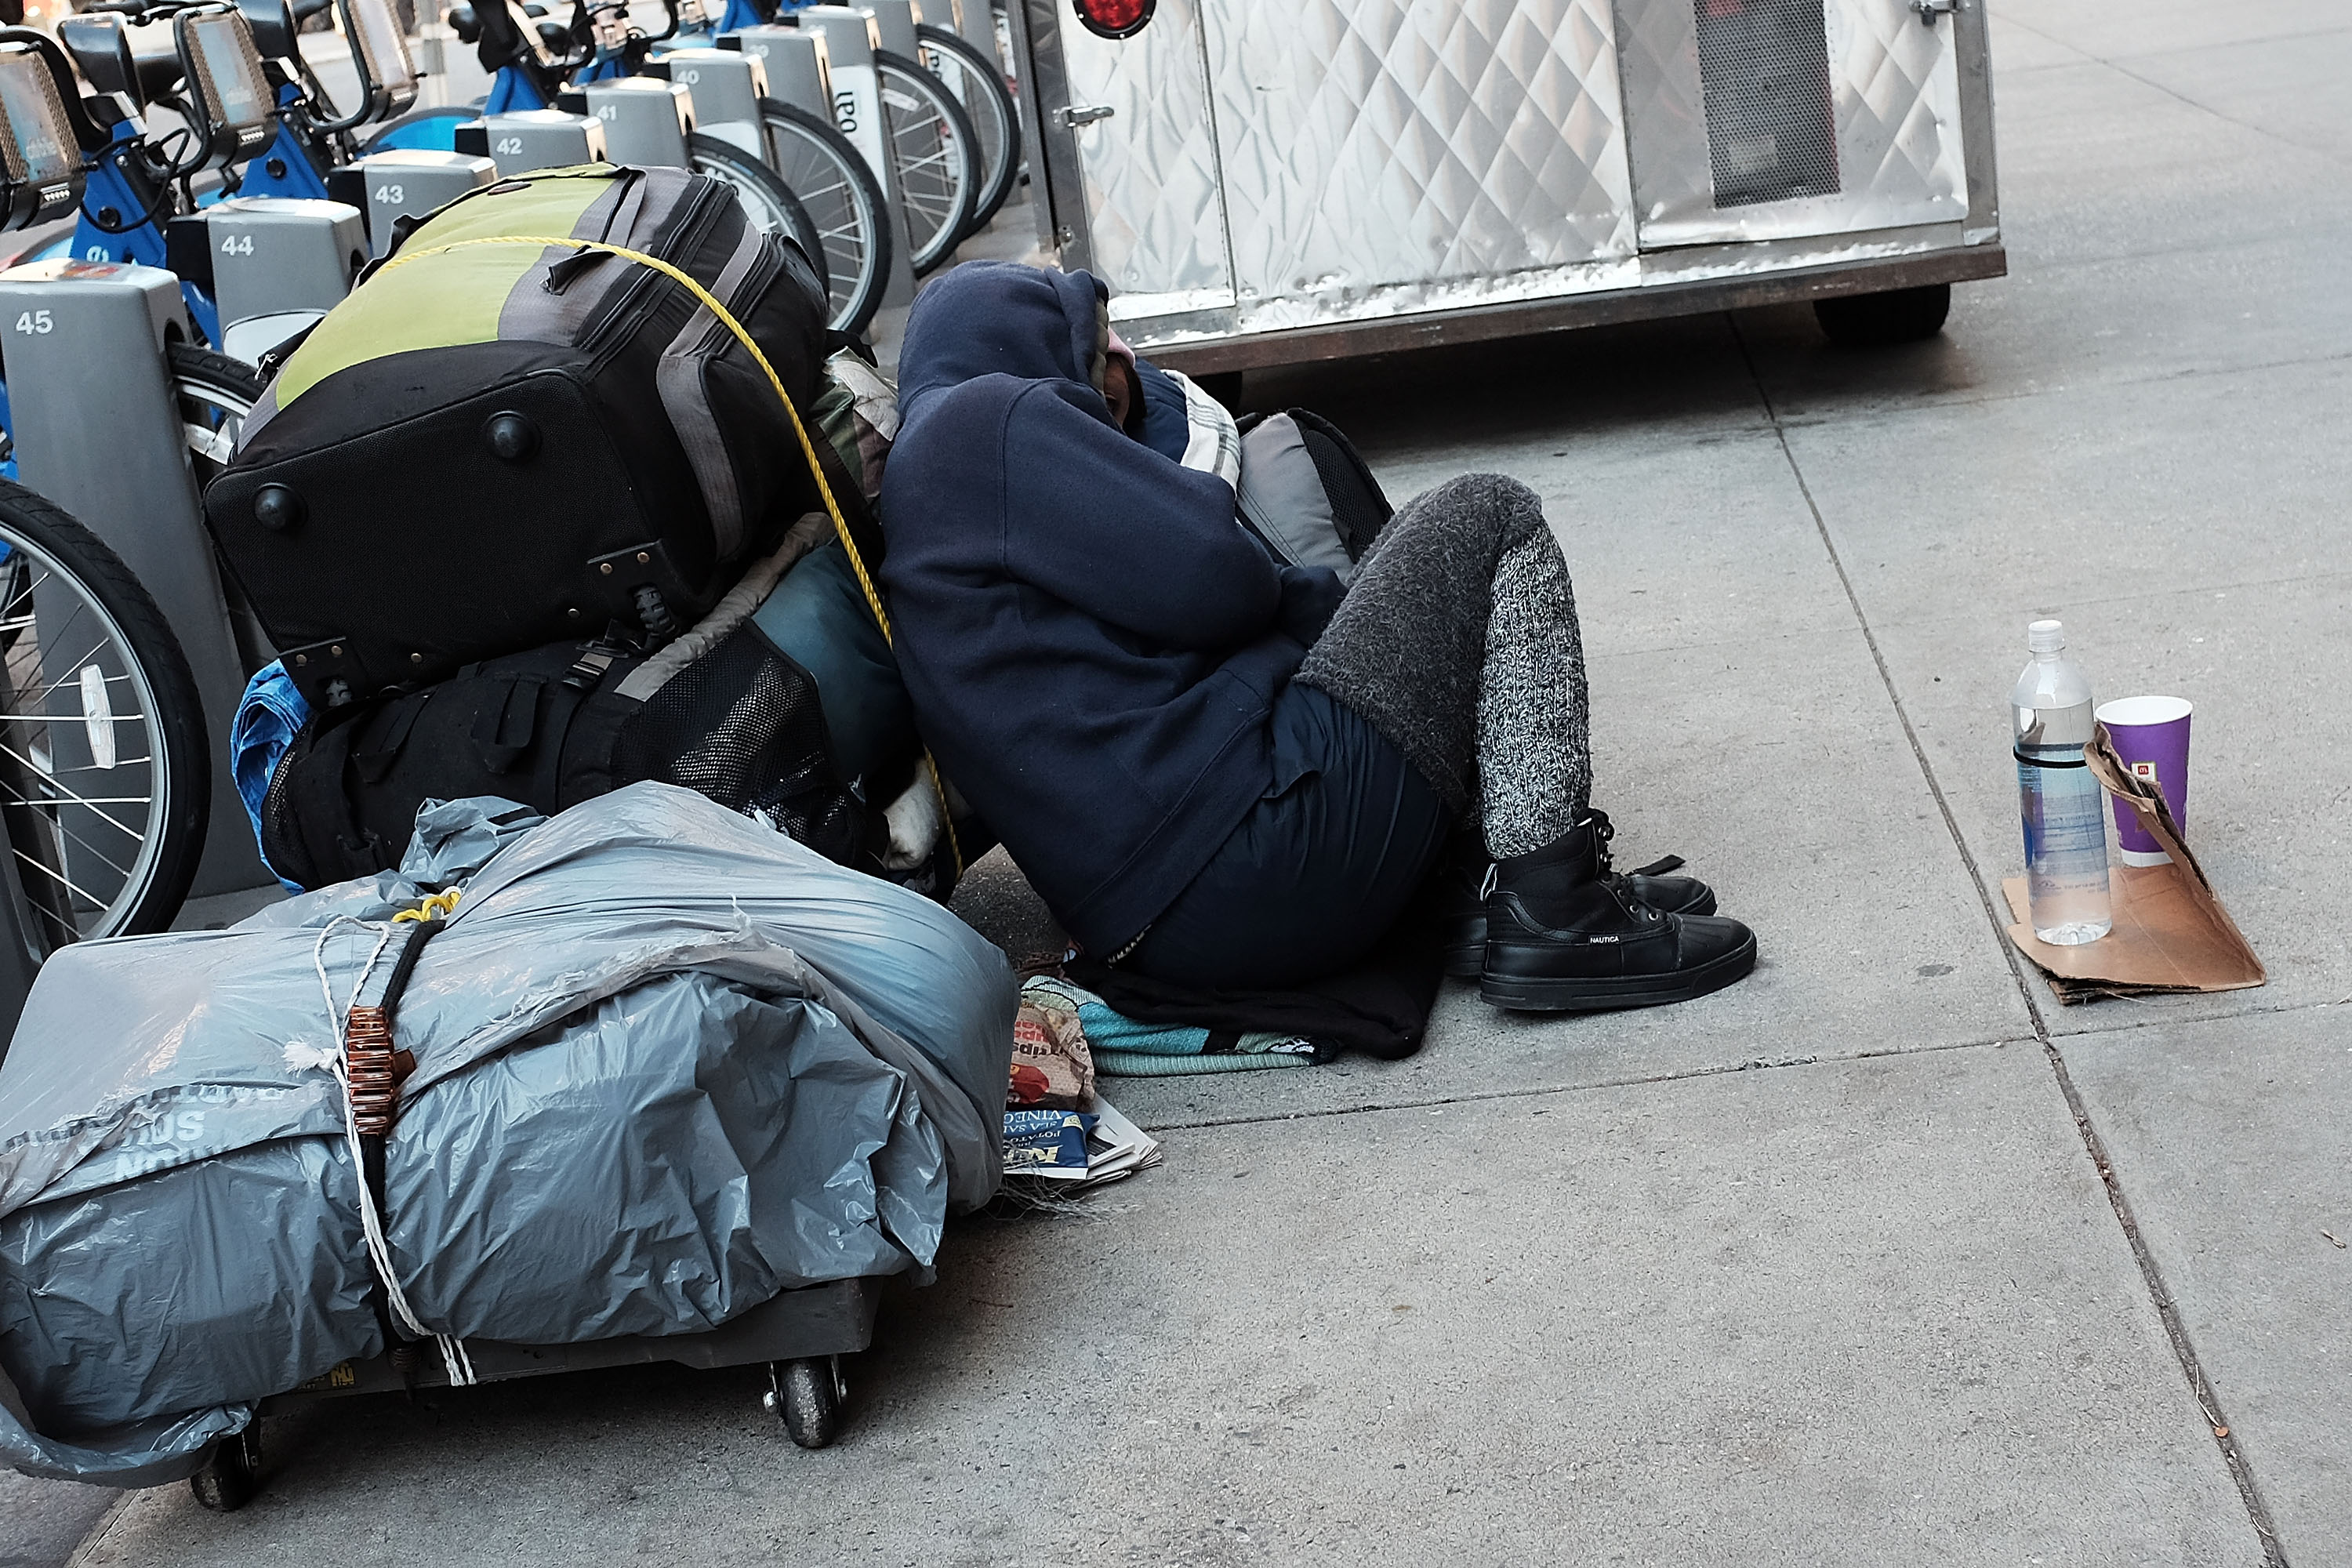 NYPD Police Chief Bratton Says Homelessness In City Has Spiked In Last Two Years